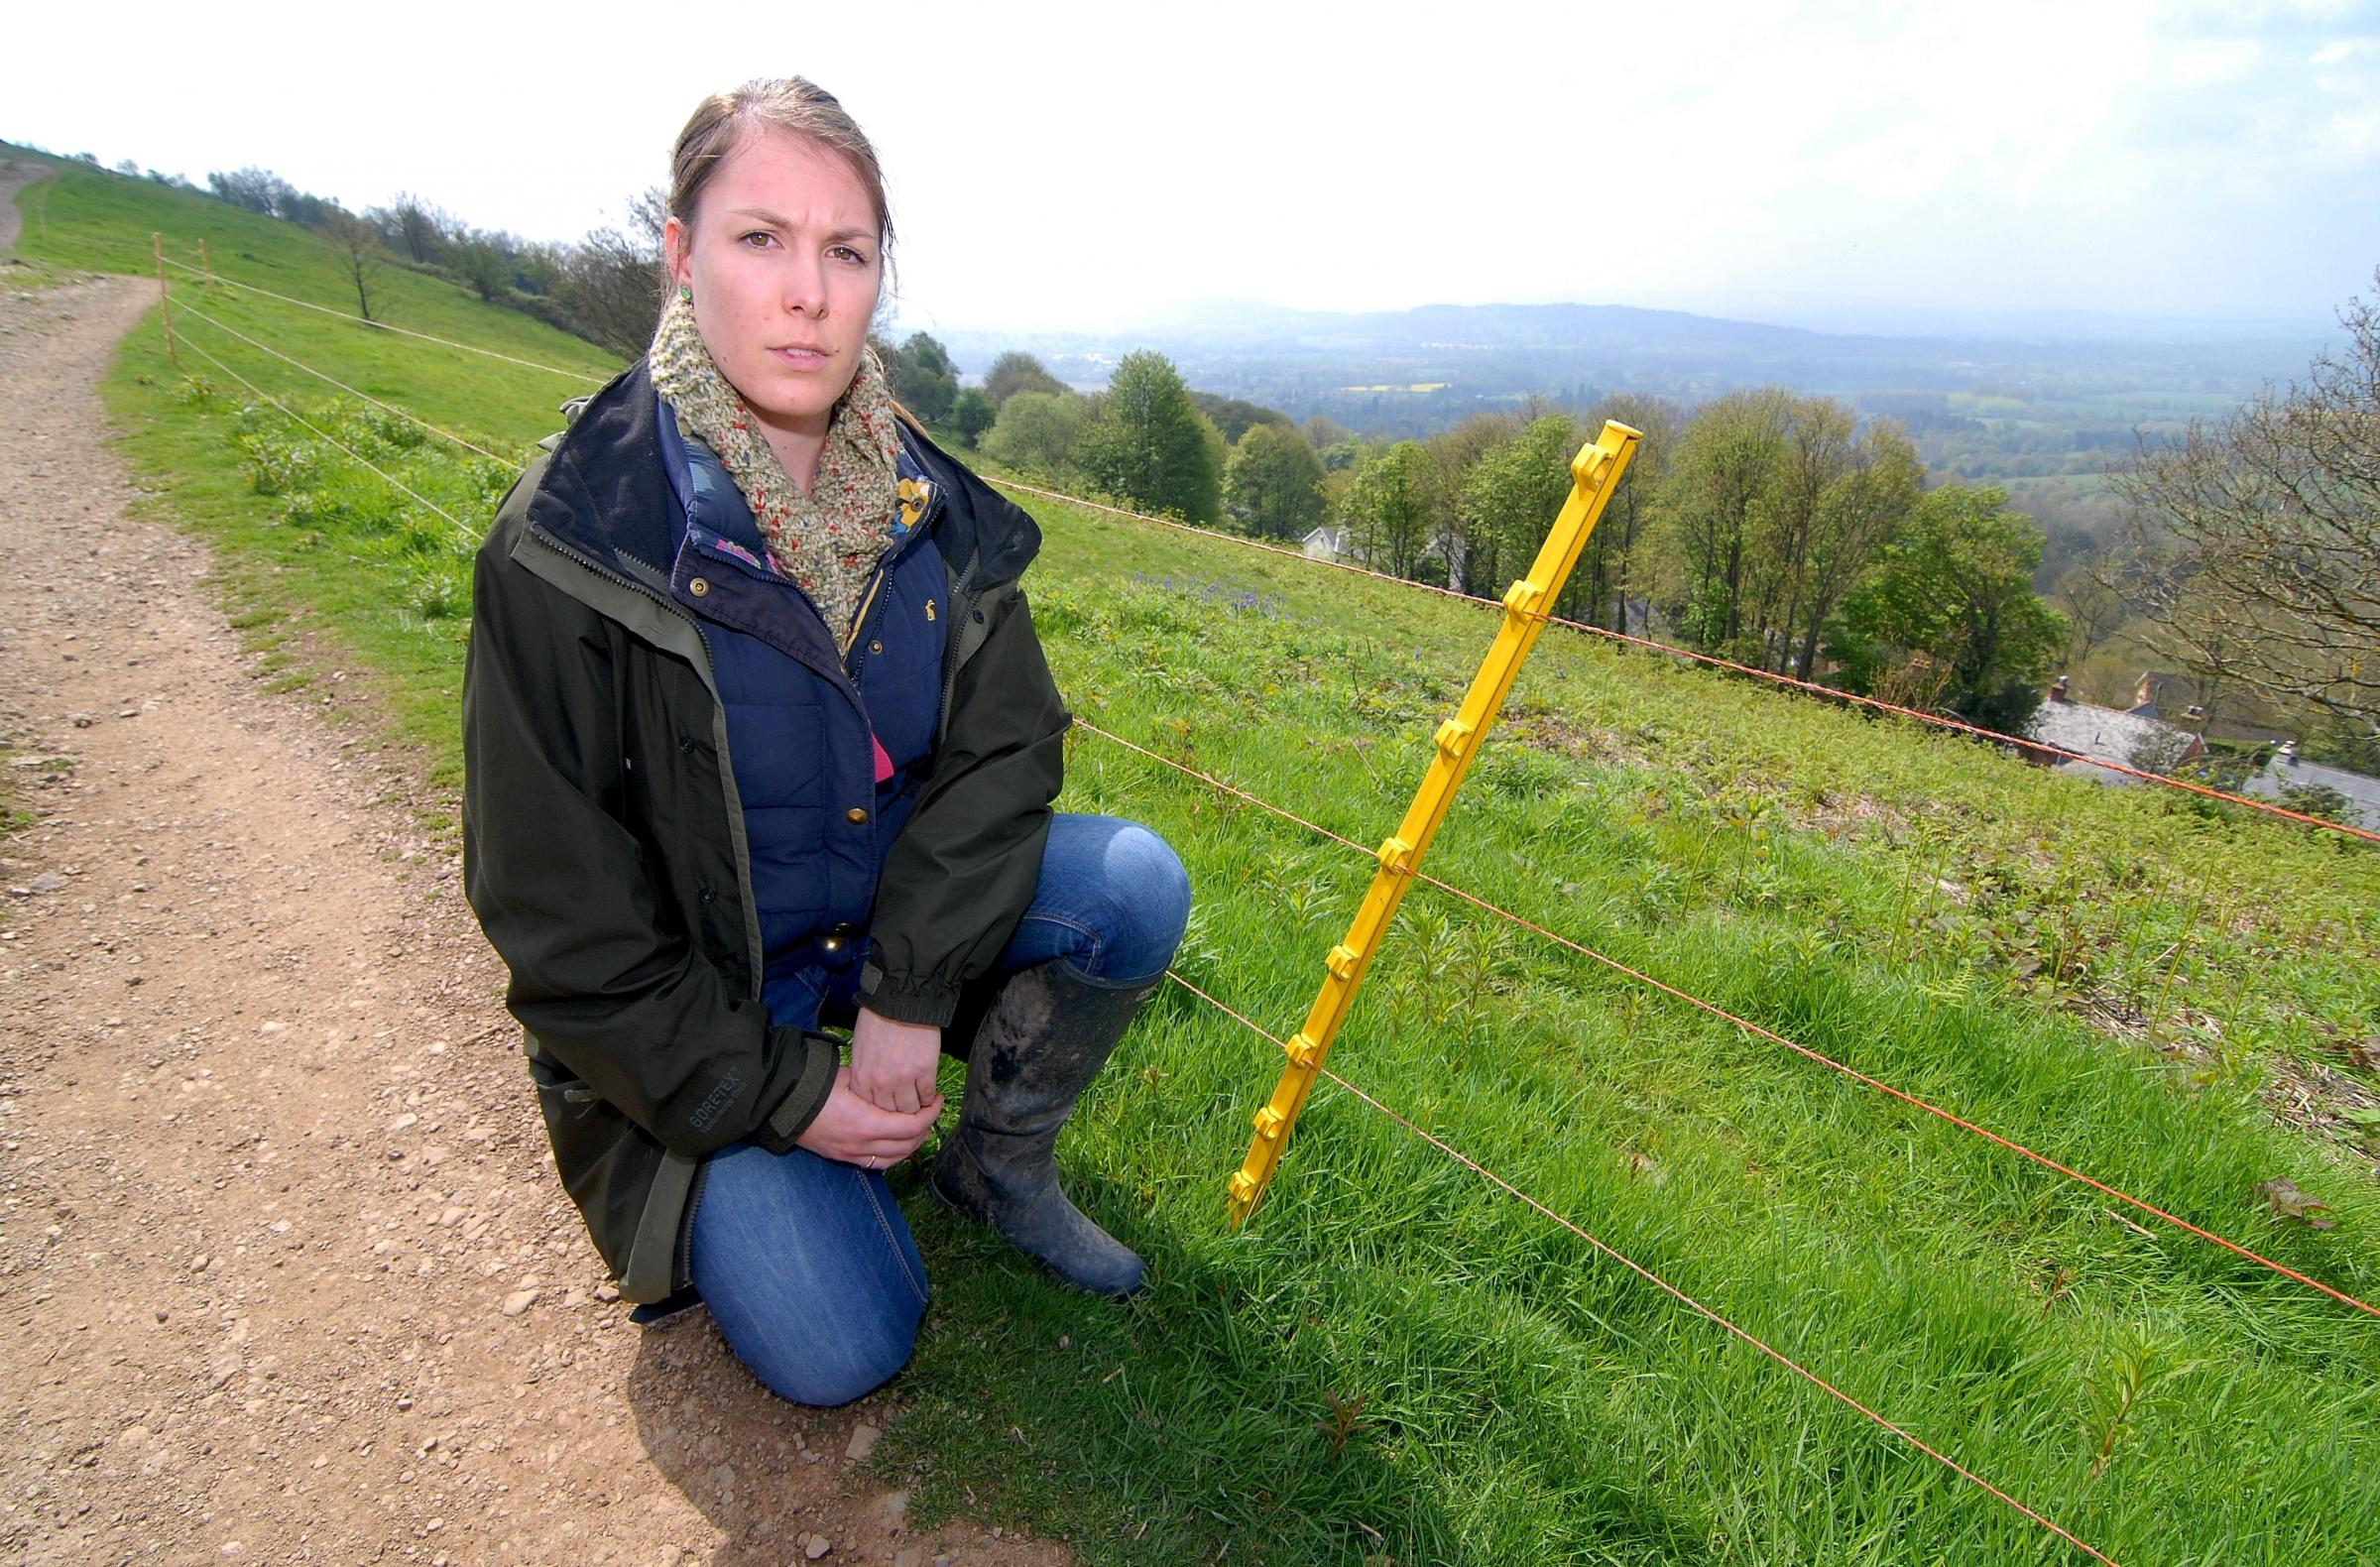 Vandals put traffic and livestock at risk by cutting electric fences on Malvern Hills